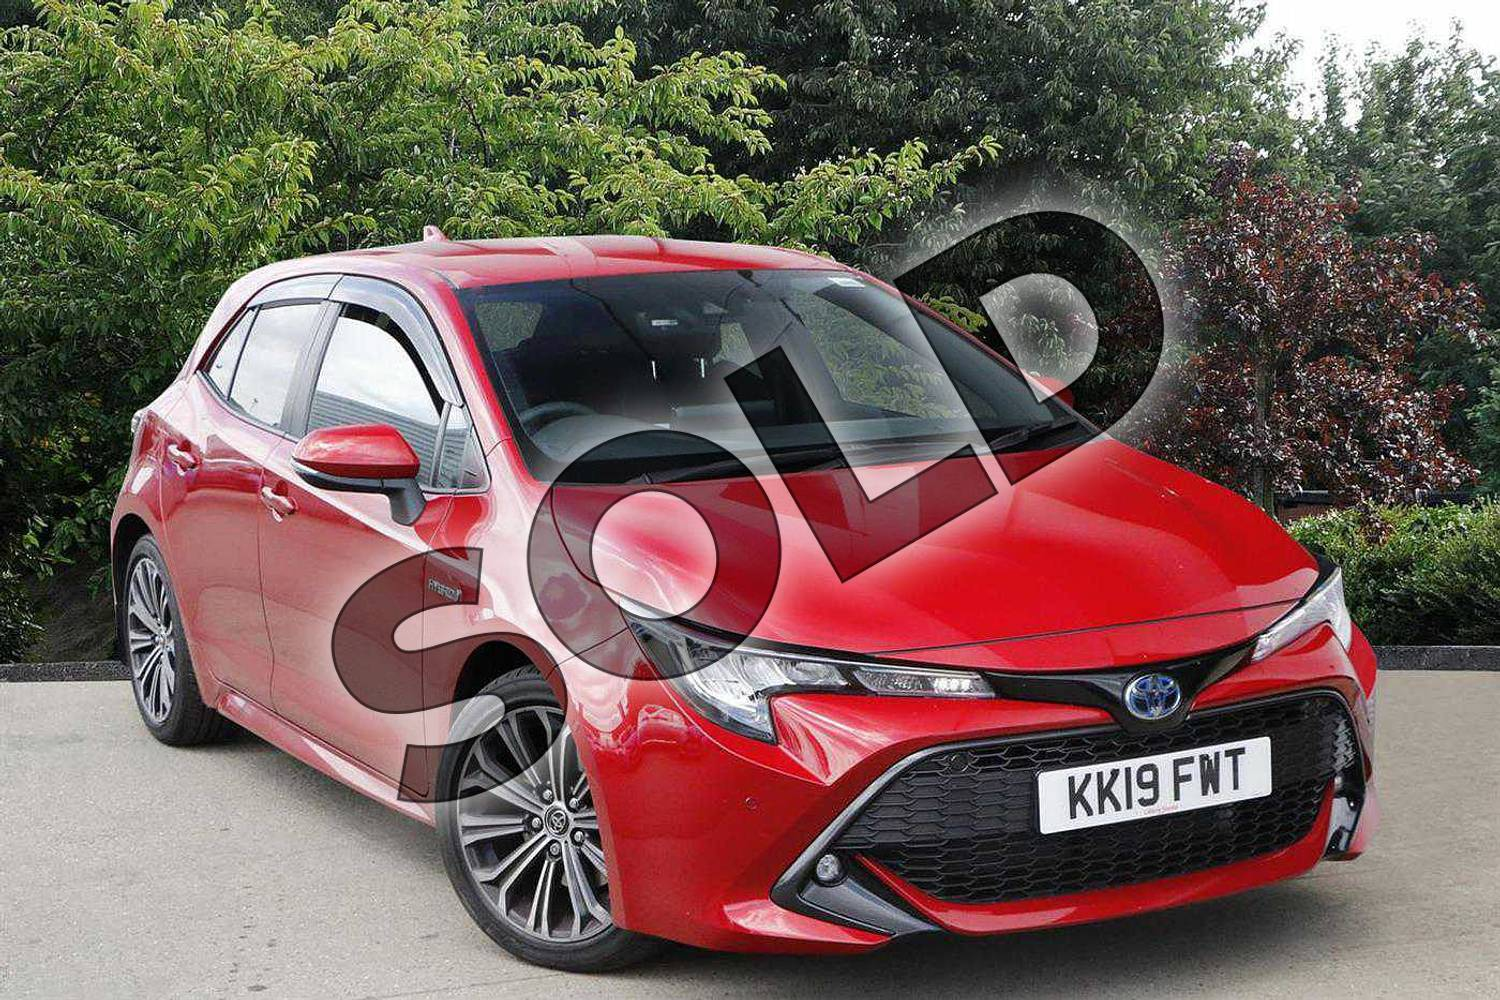 2019 Toyota Corolla Hatchback 2.0 VVT-i Hybrid Design 5dr CVT in Red at Listers Toyota Nuneaton